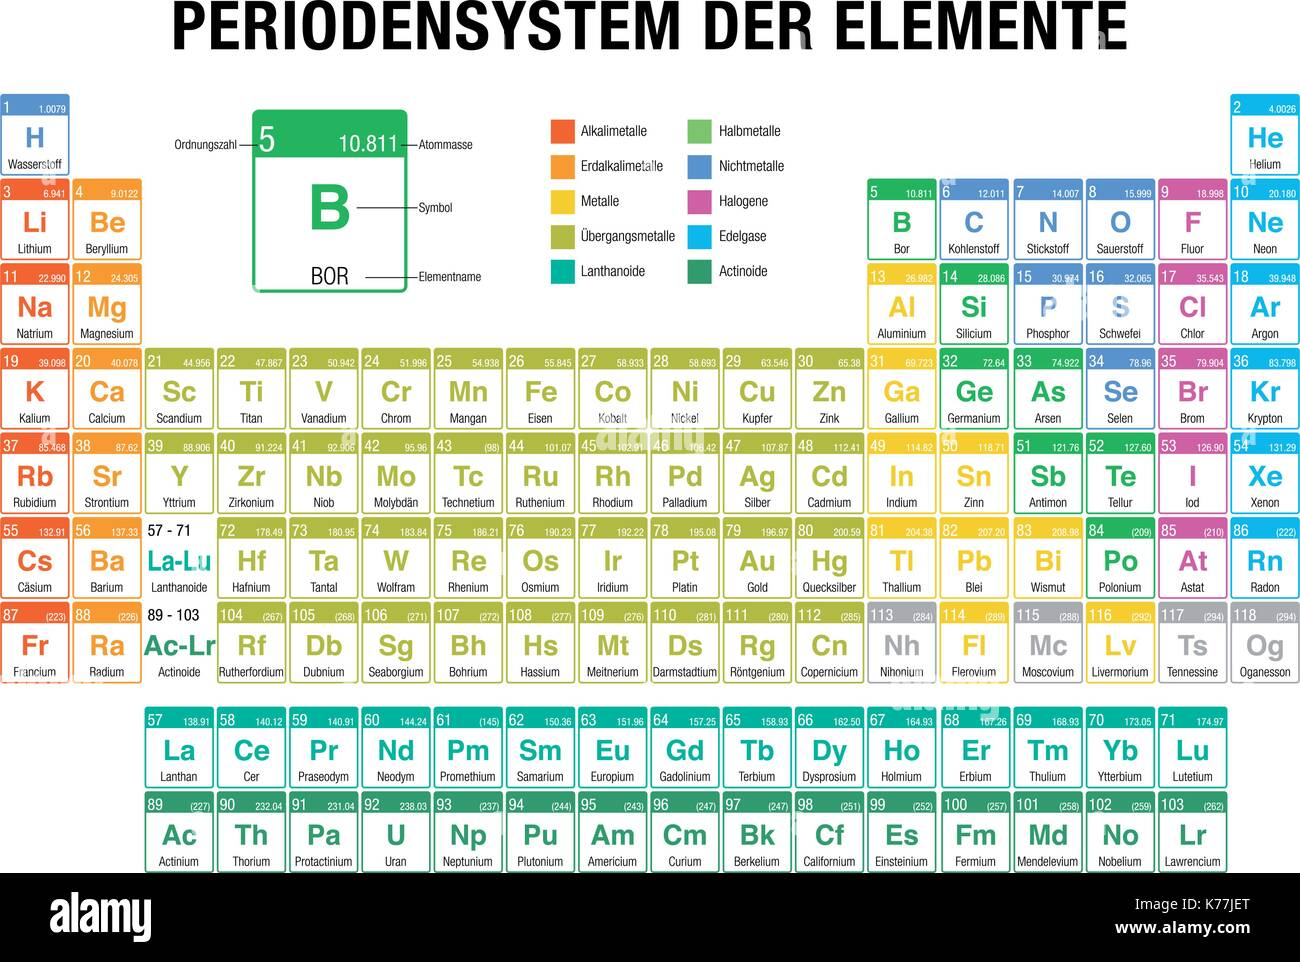 Periodensystem der elemente periodic table of elements in german periodensystem der elemente periodic table of elements in german language on white background with the 4 new elements included on november 28 2016 urtaz